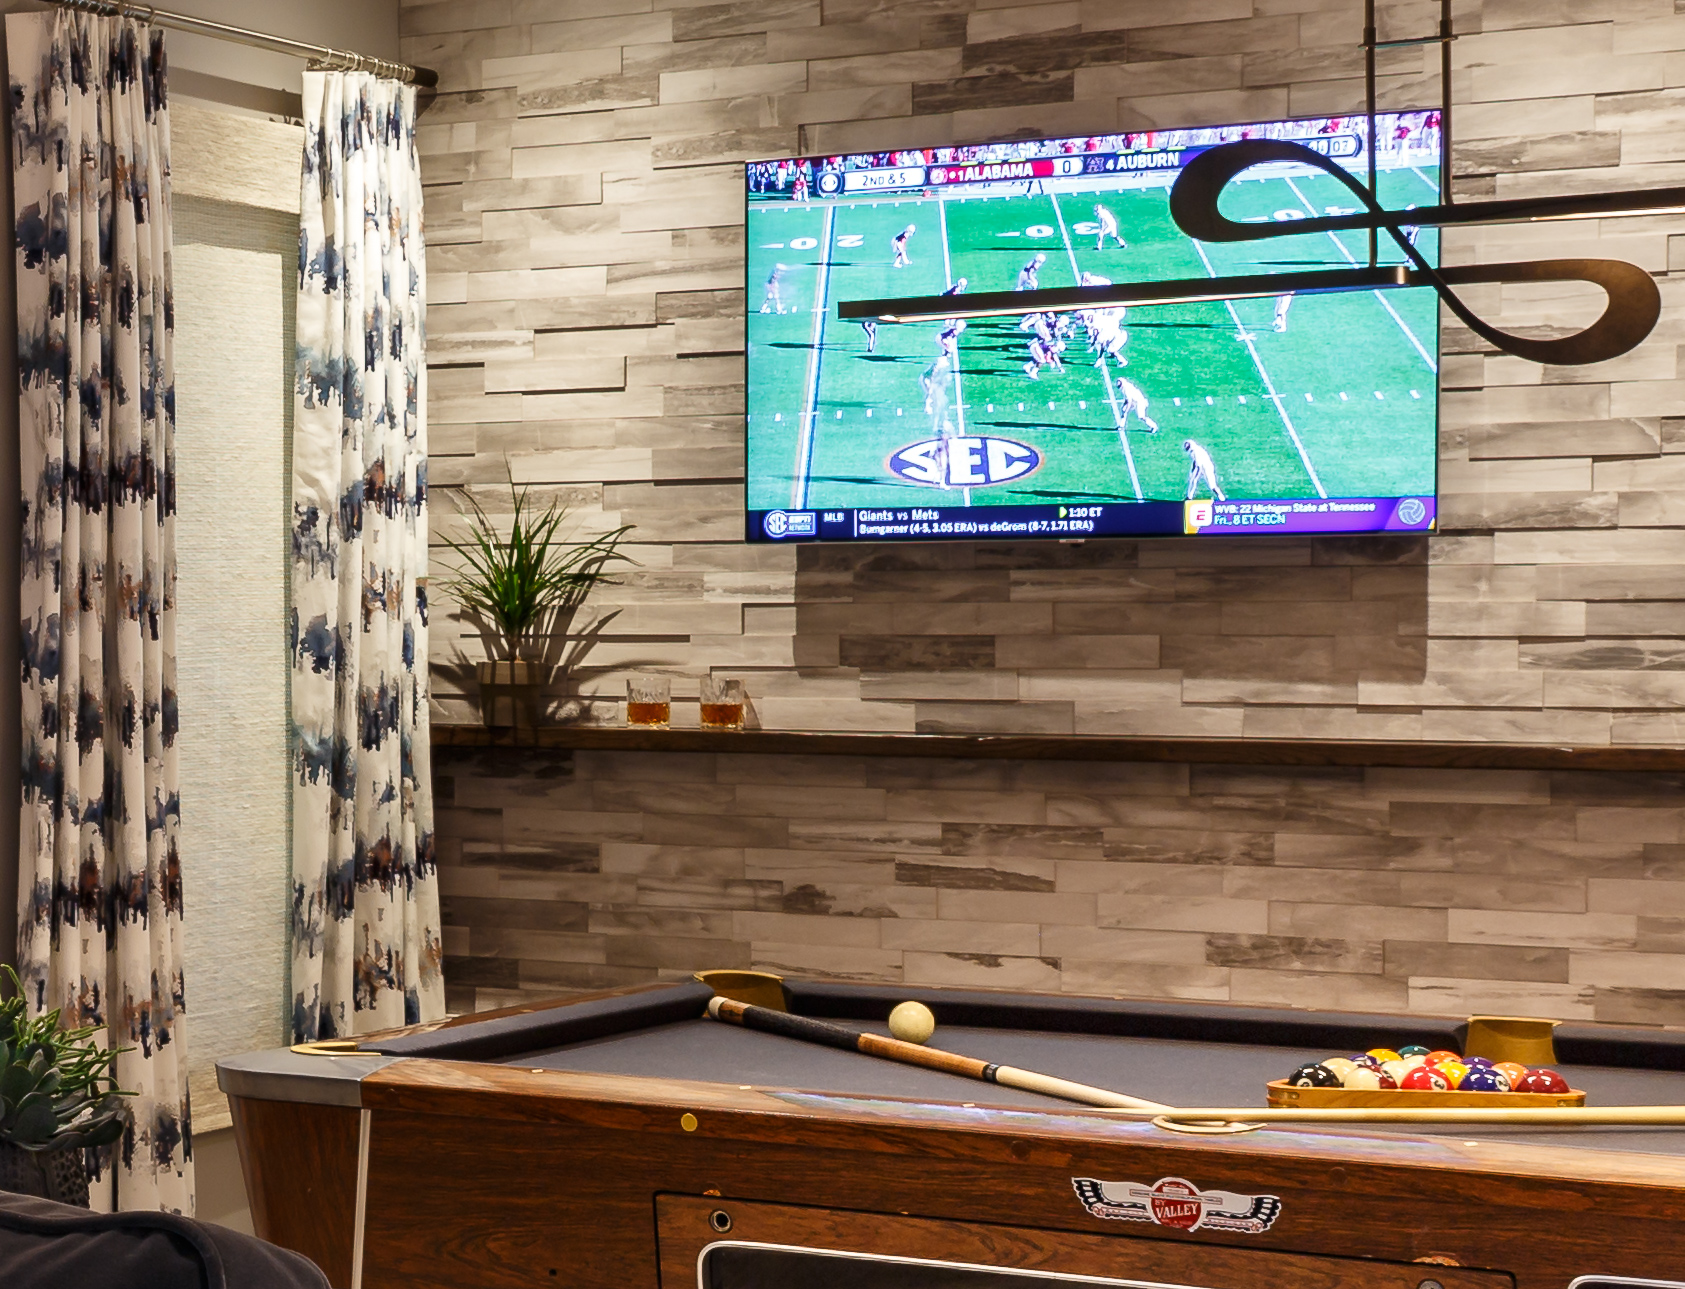 Stone wall behind pool floating shelf light fixture over pool table